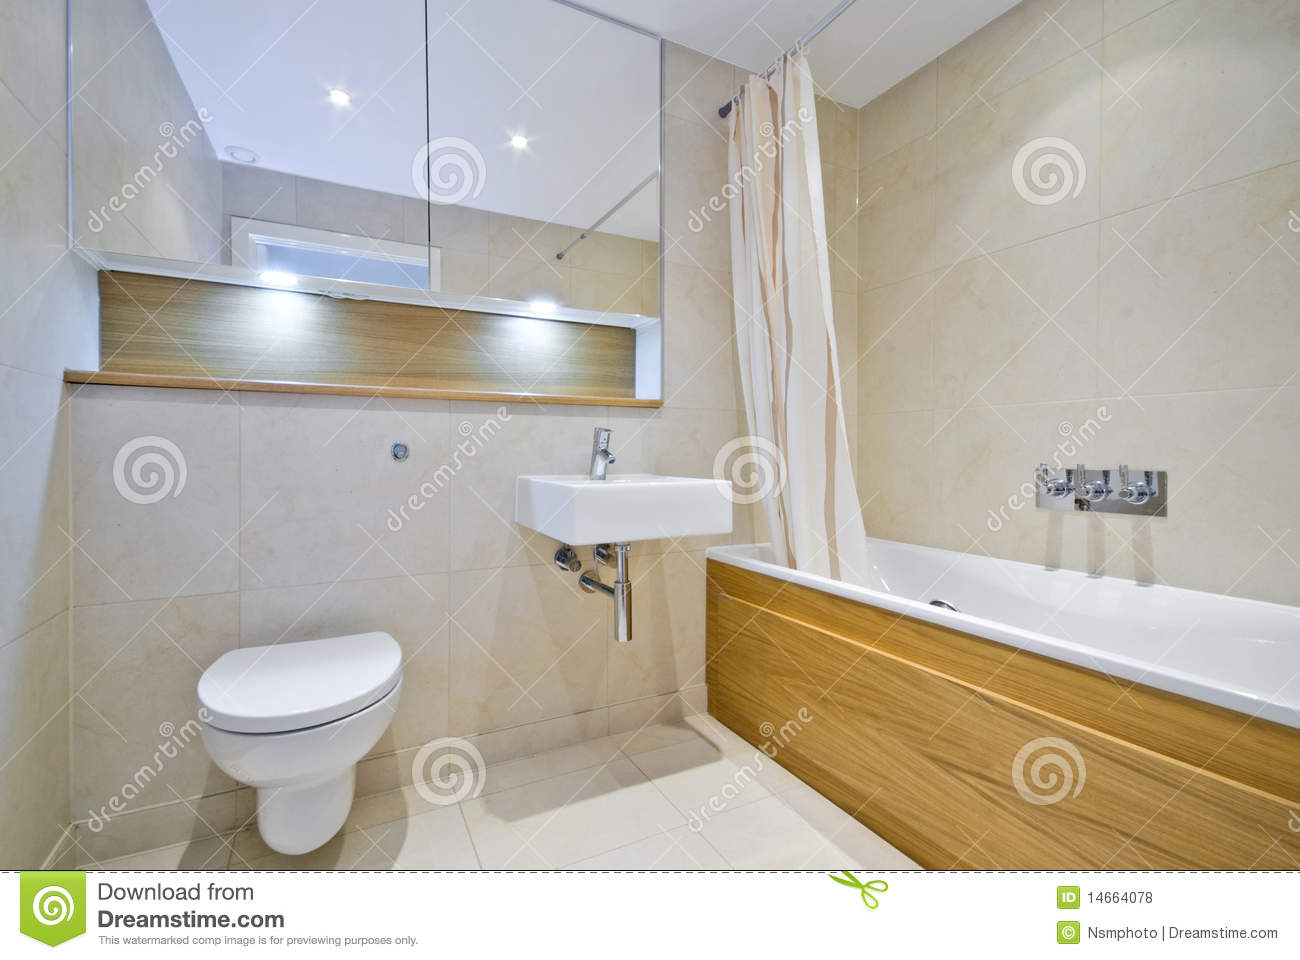 Normales Badezimmer Modern Bathroom With Large Bath Tub In Beige Stock Photo